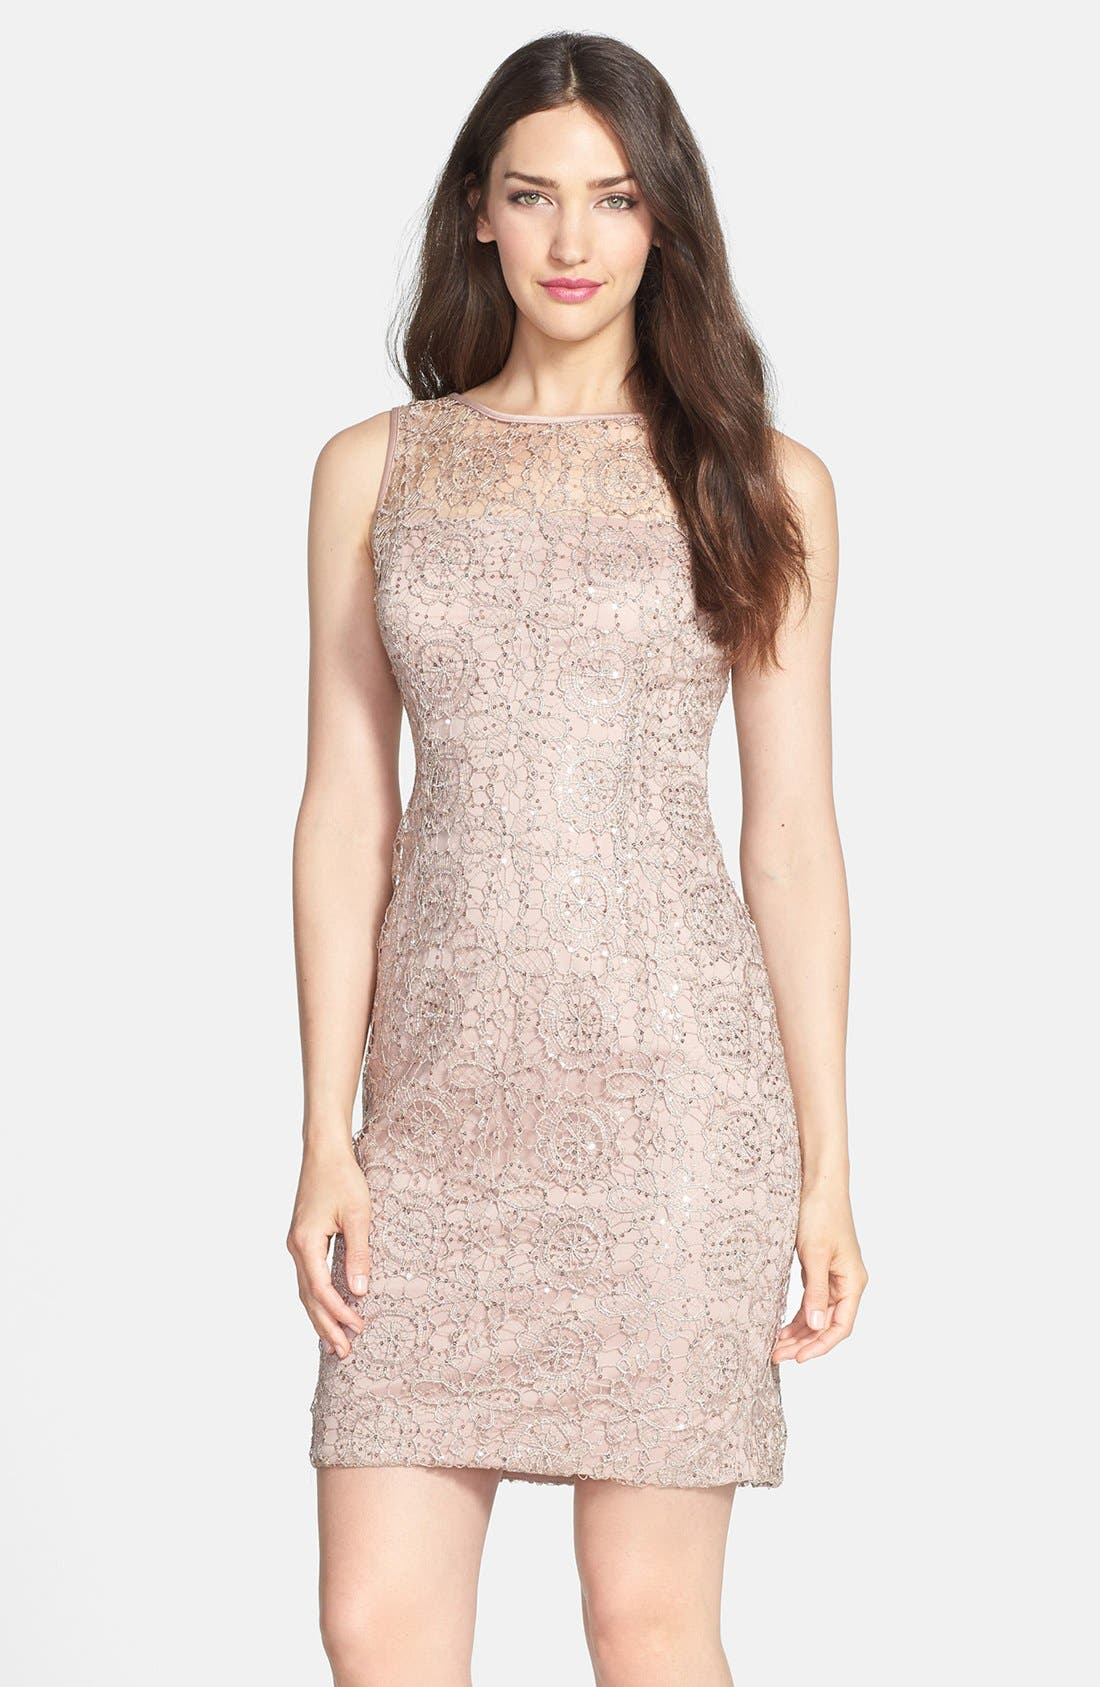 Alternate Image 1 Selected - Adrianna Papell Sleeveless Sequin Metallic Lace Dress